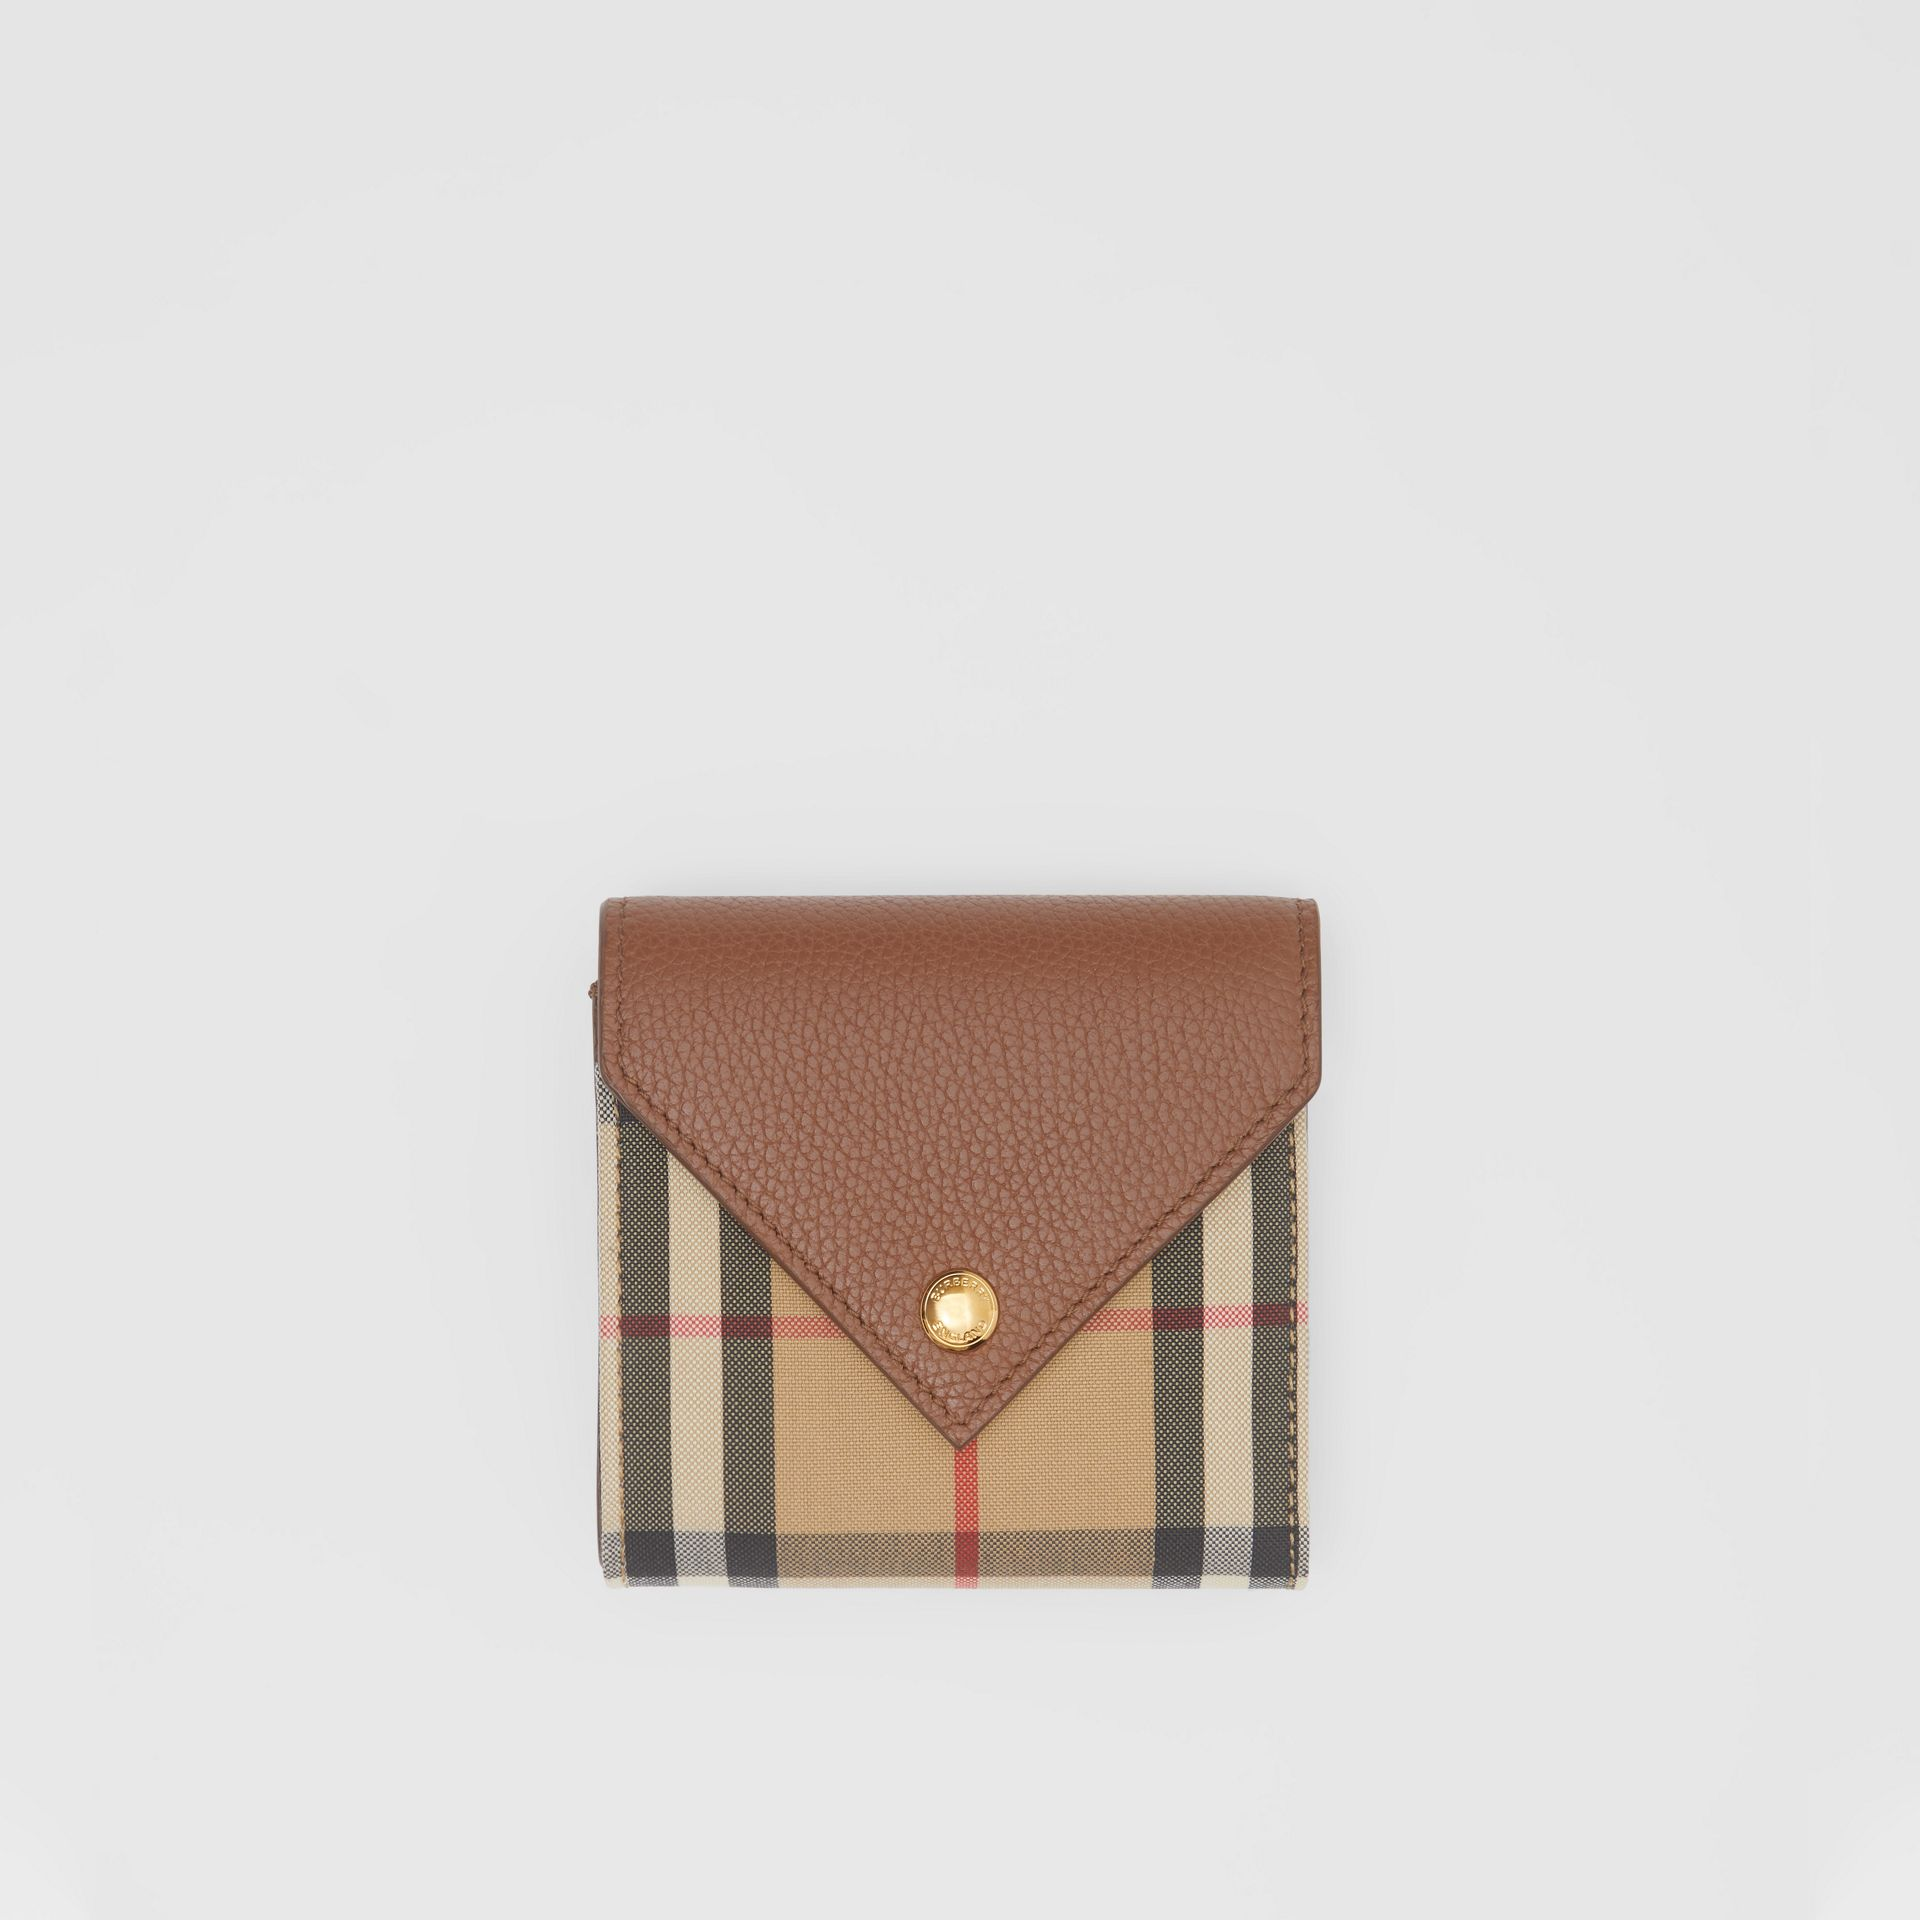 Vintage Check and Grainy Leather Folding Wallet in Tan - Women | Burberry - gallery image 0